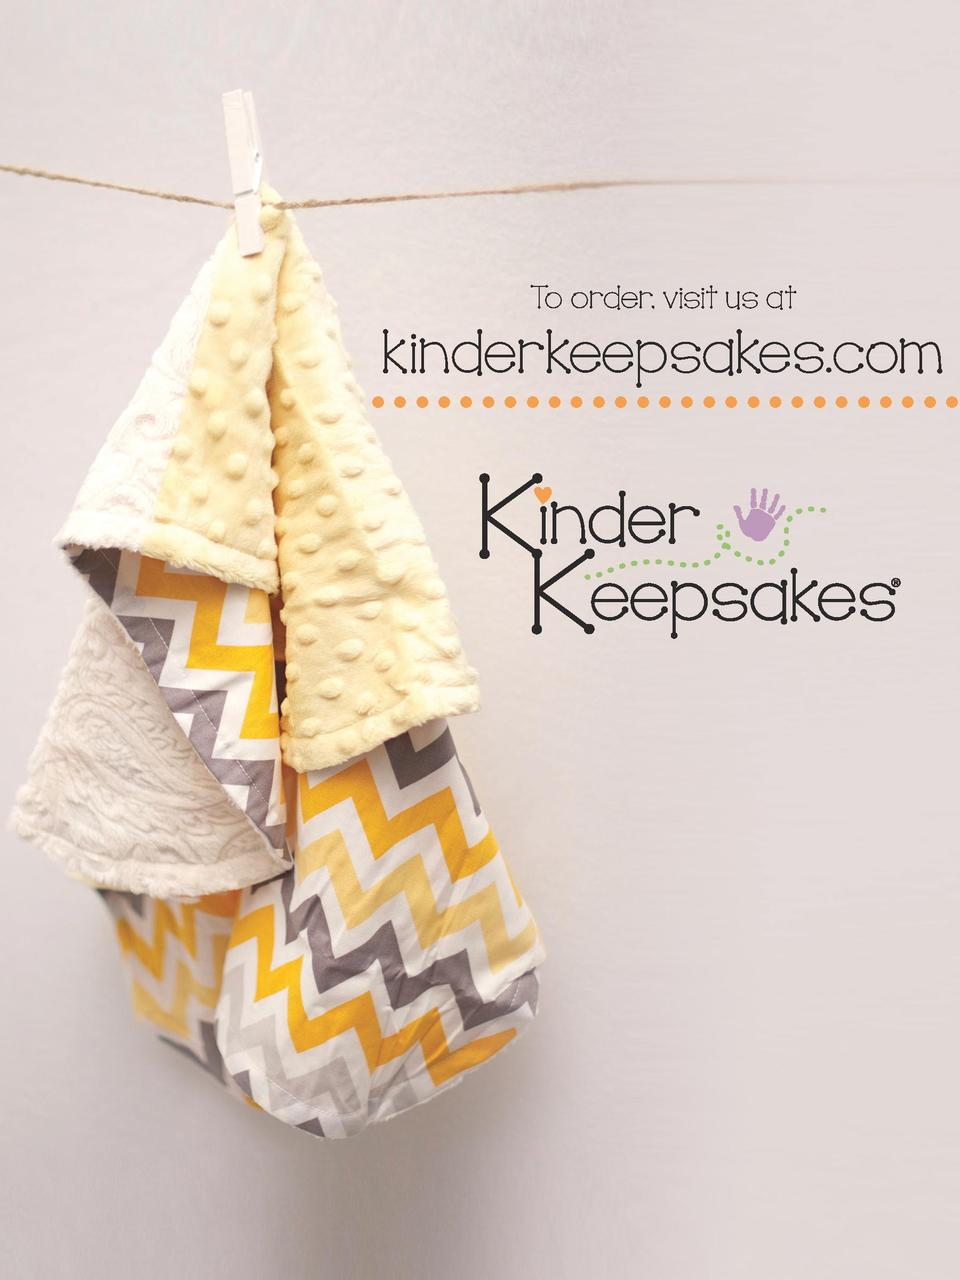 To order, visit us at  kinderkeepsakes.com